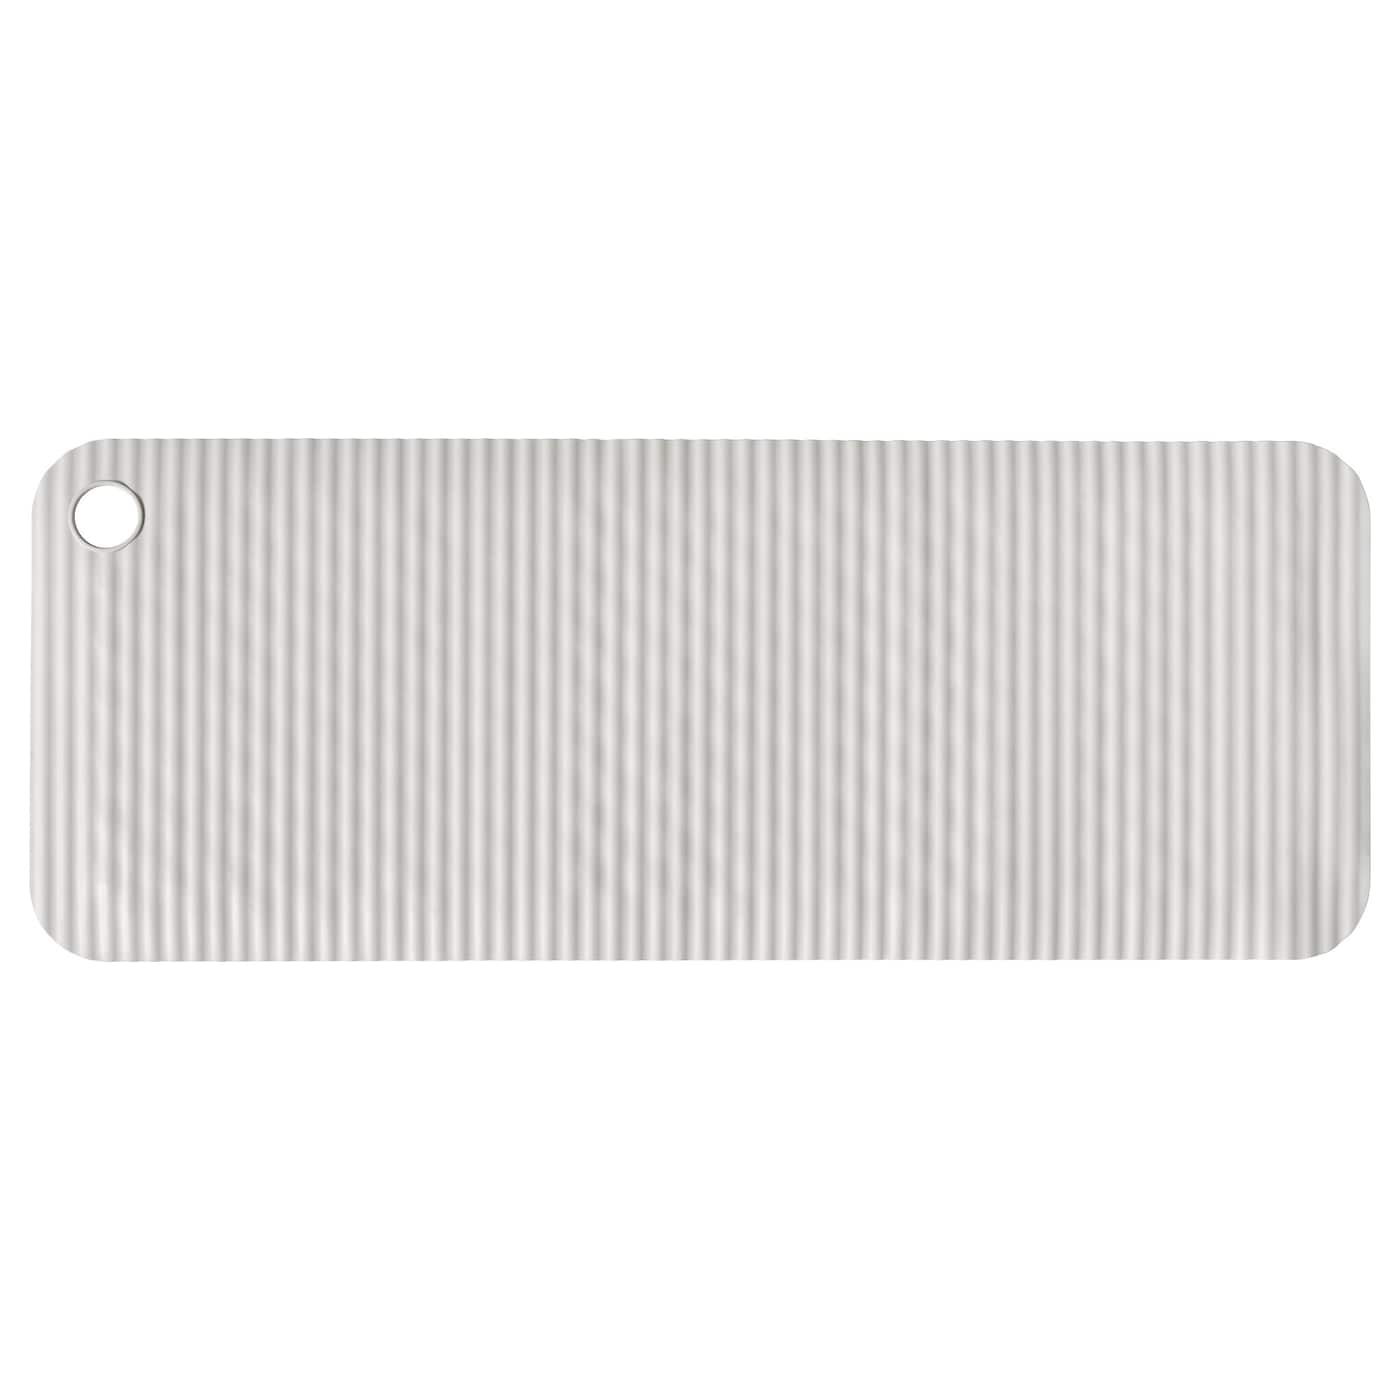 IKEA DOPPA bathtub mat Suction cups keep the mat safely in place in your bathtub or shower.